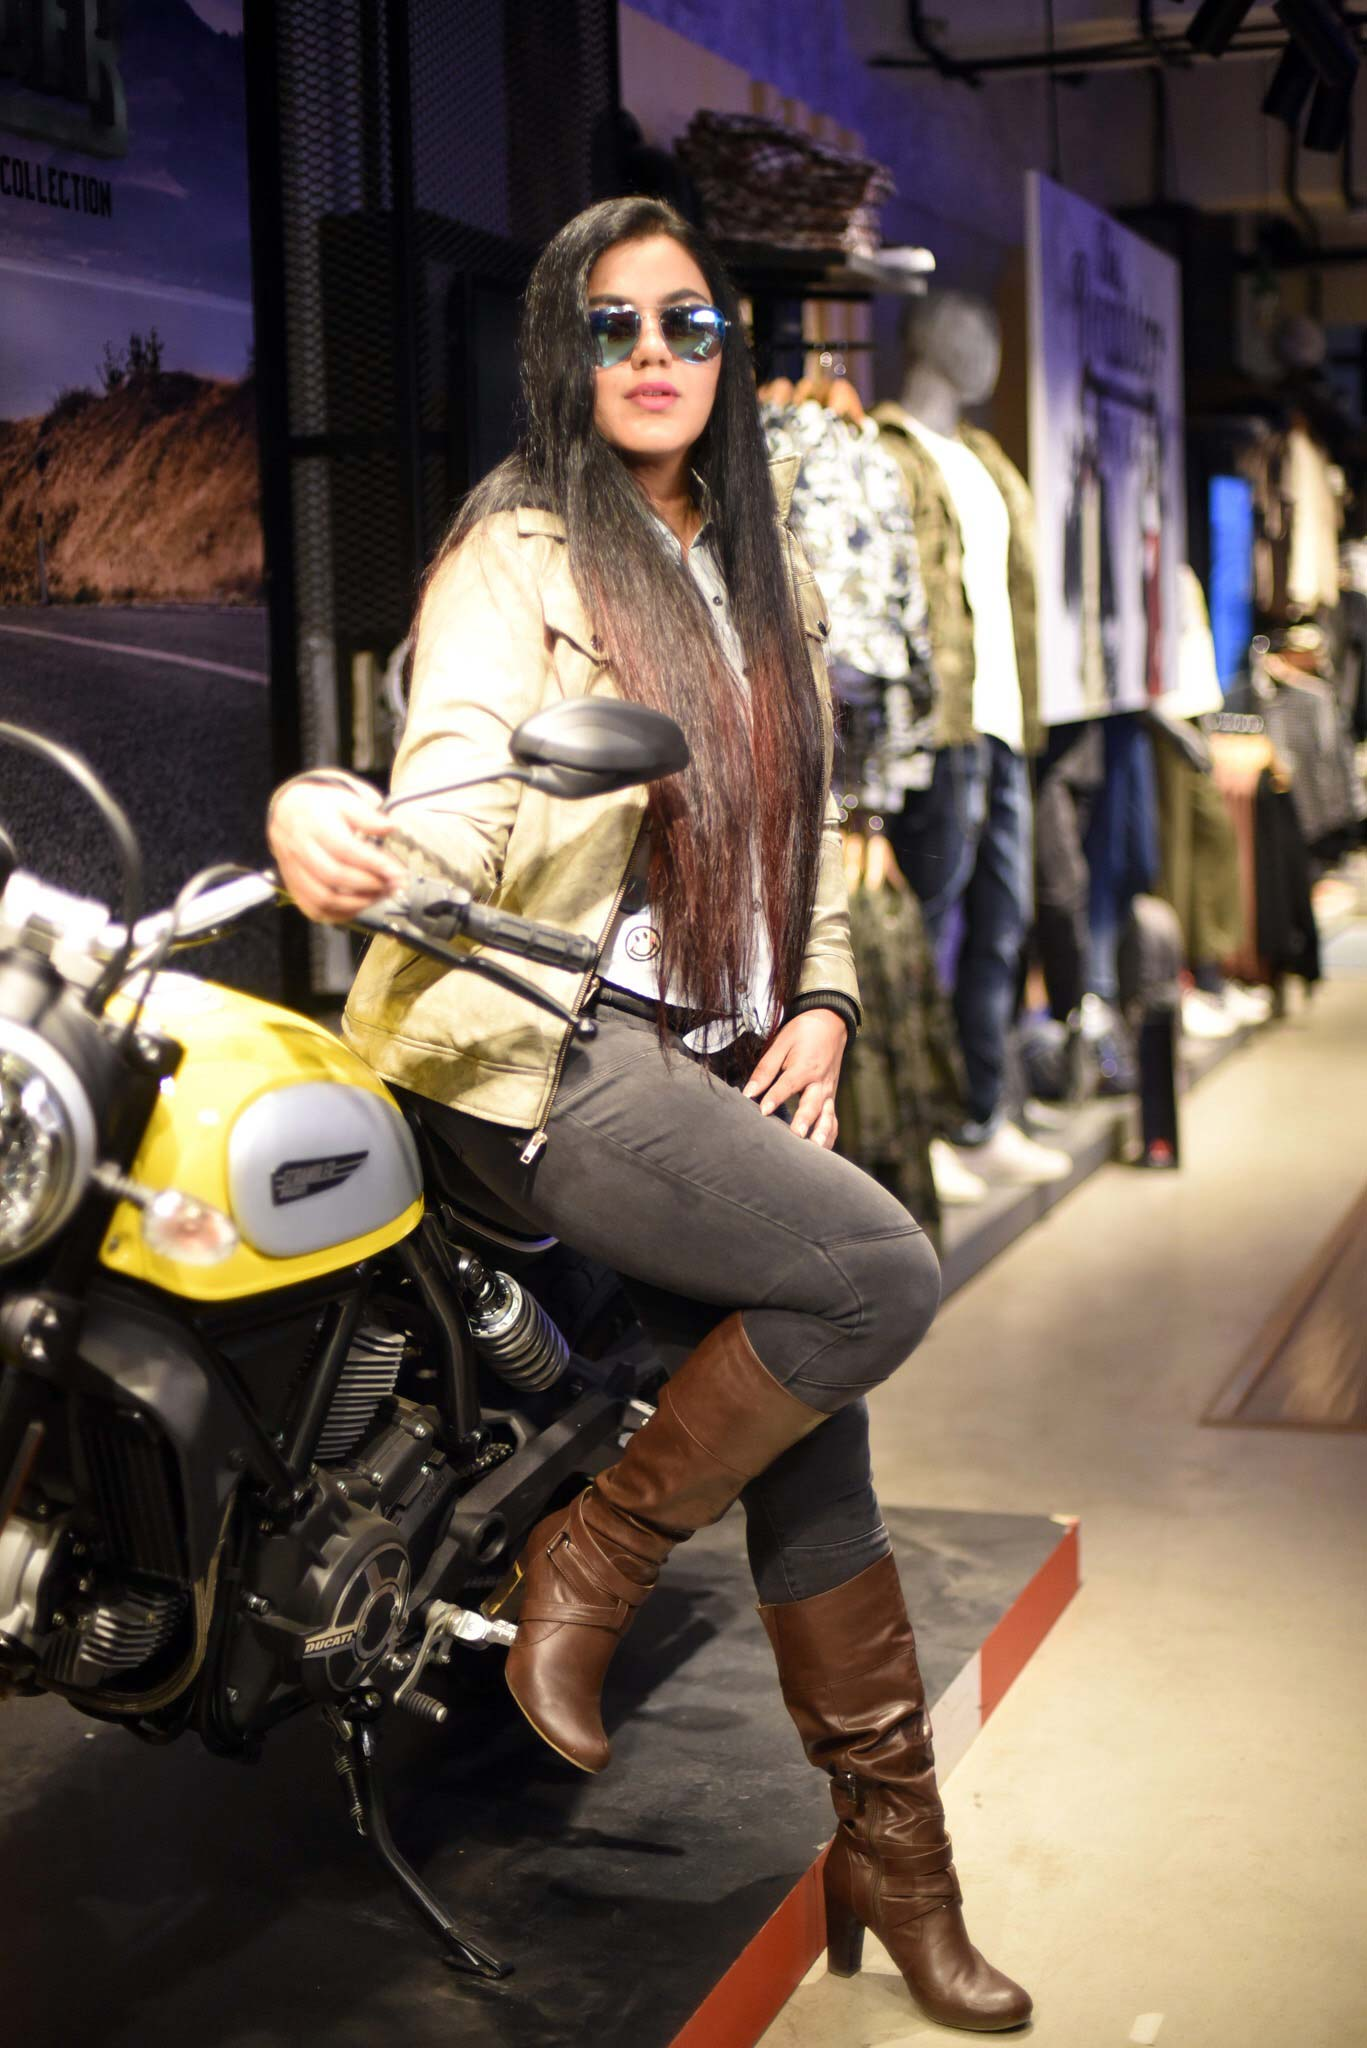 Ducati-and-Roadster-(5)